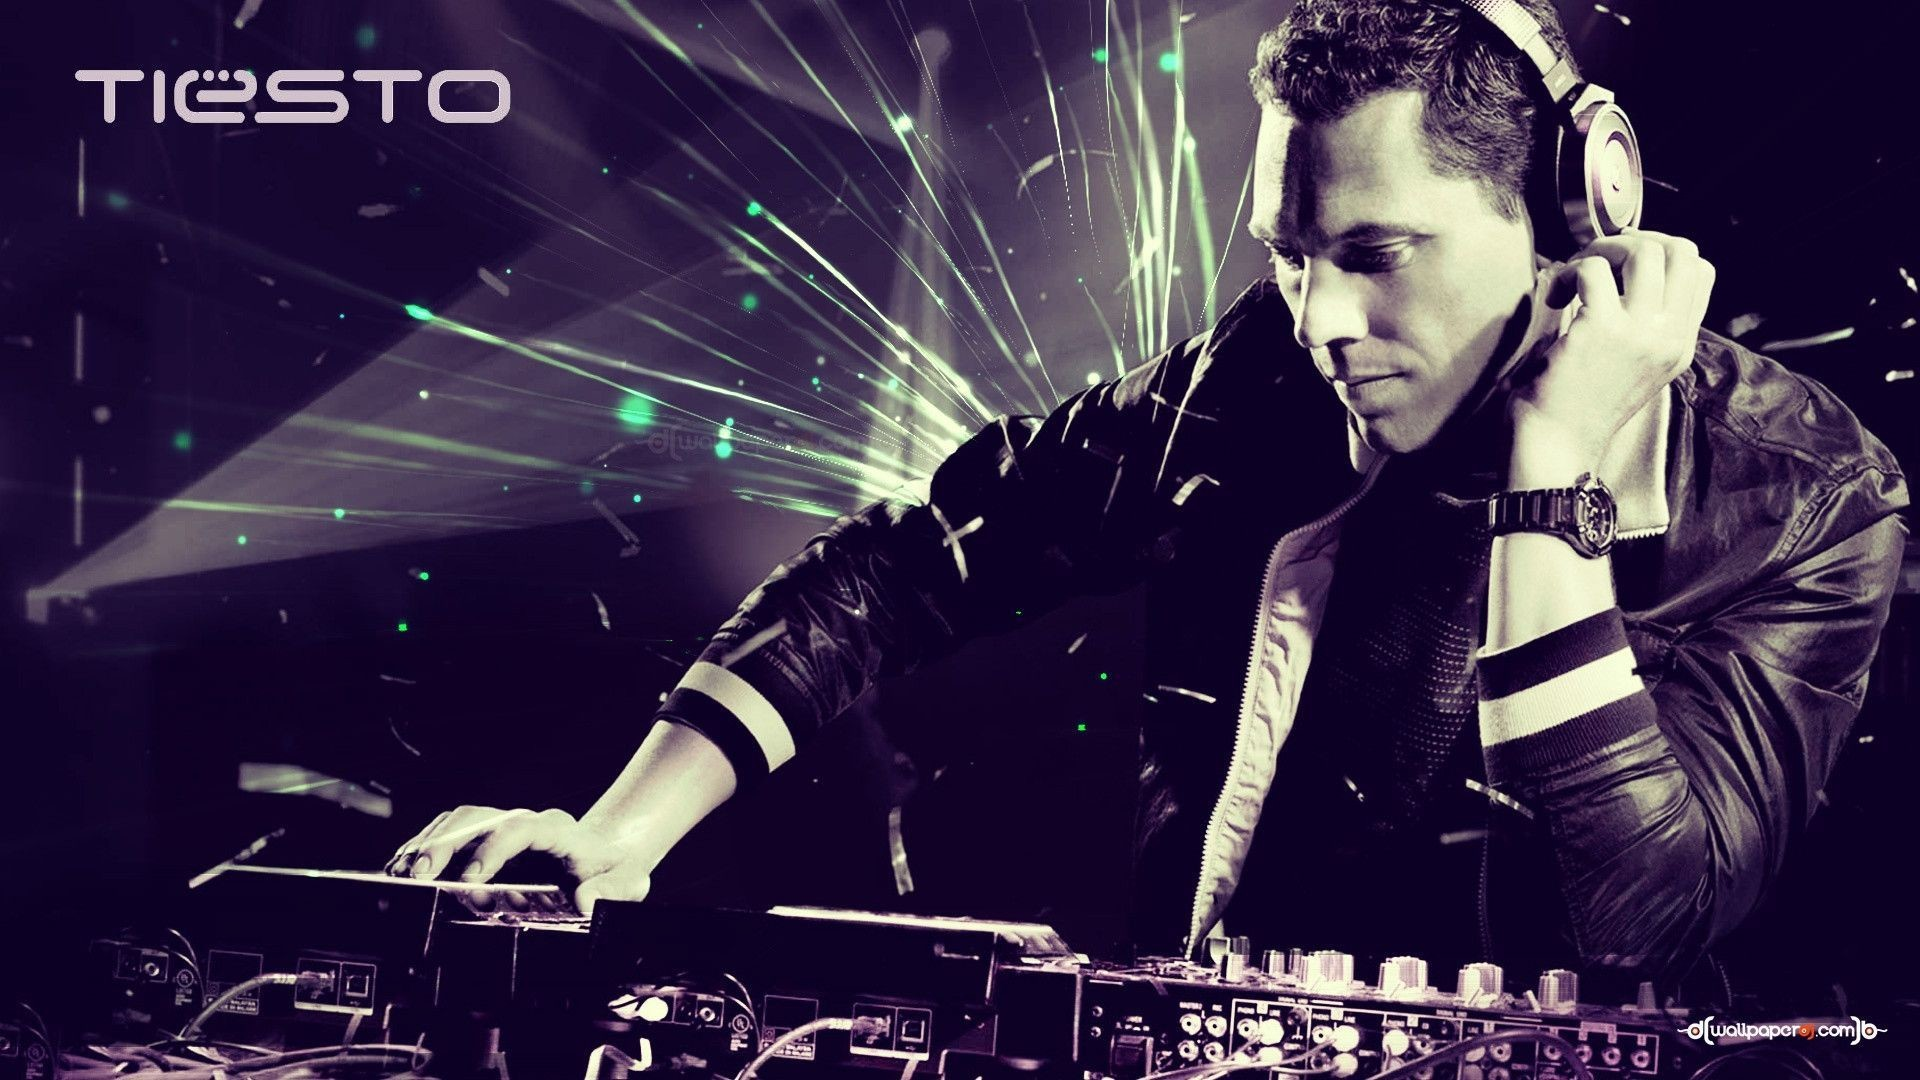 Res: 1920x1080, Free Popular Dj Tiesto Images, Dollie Andry